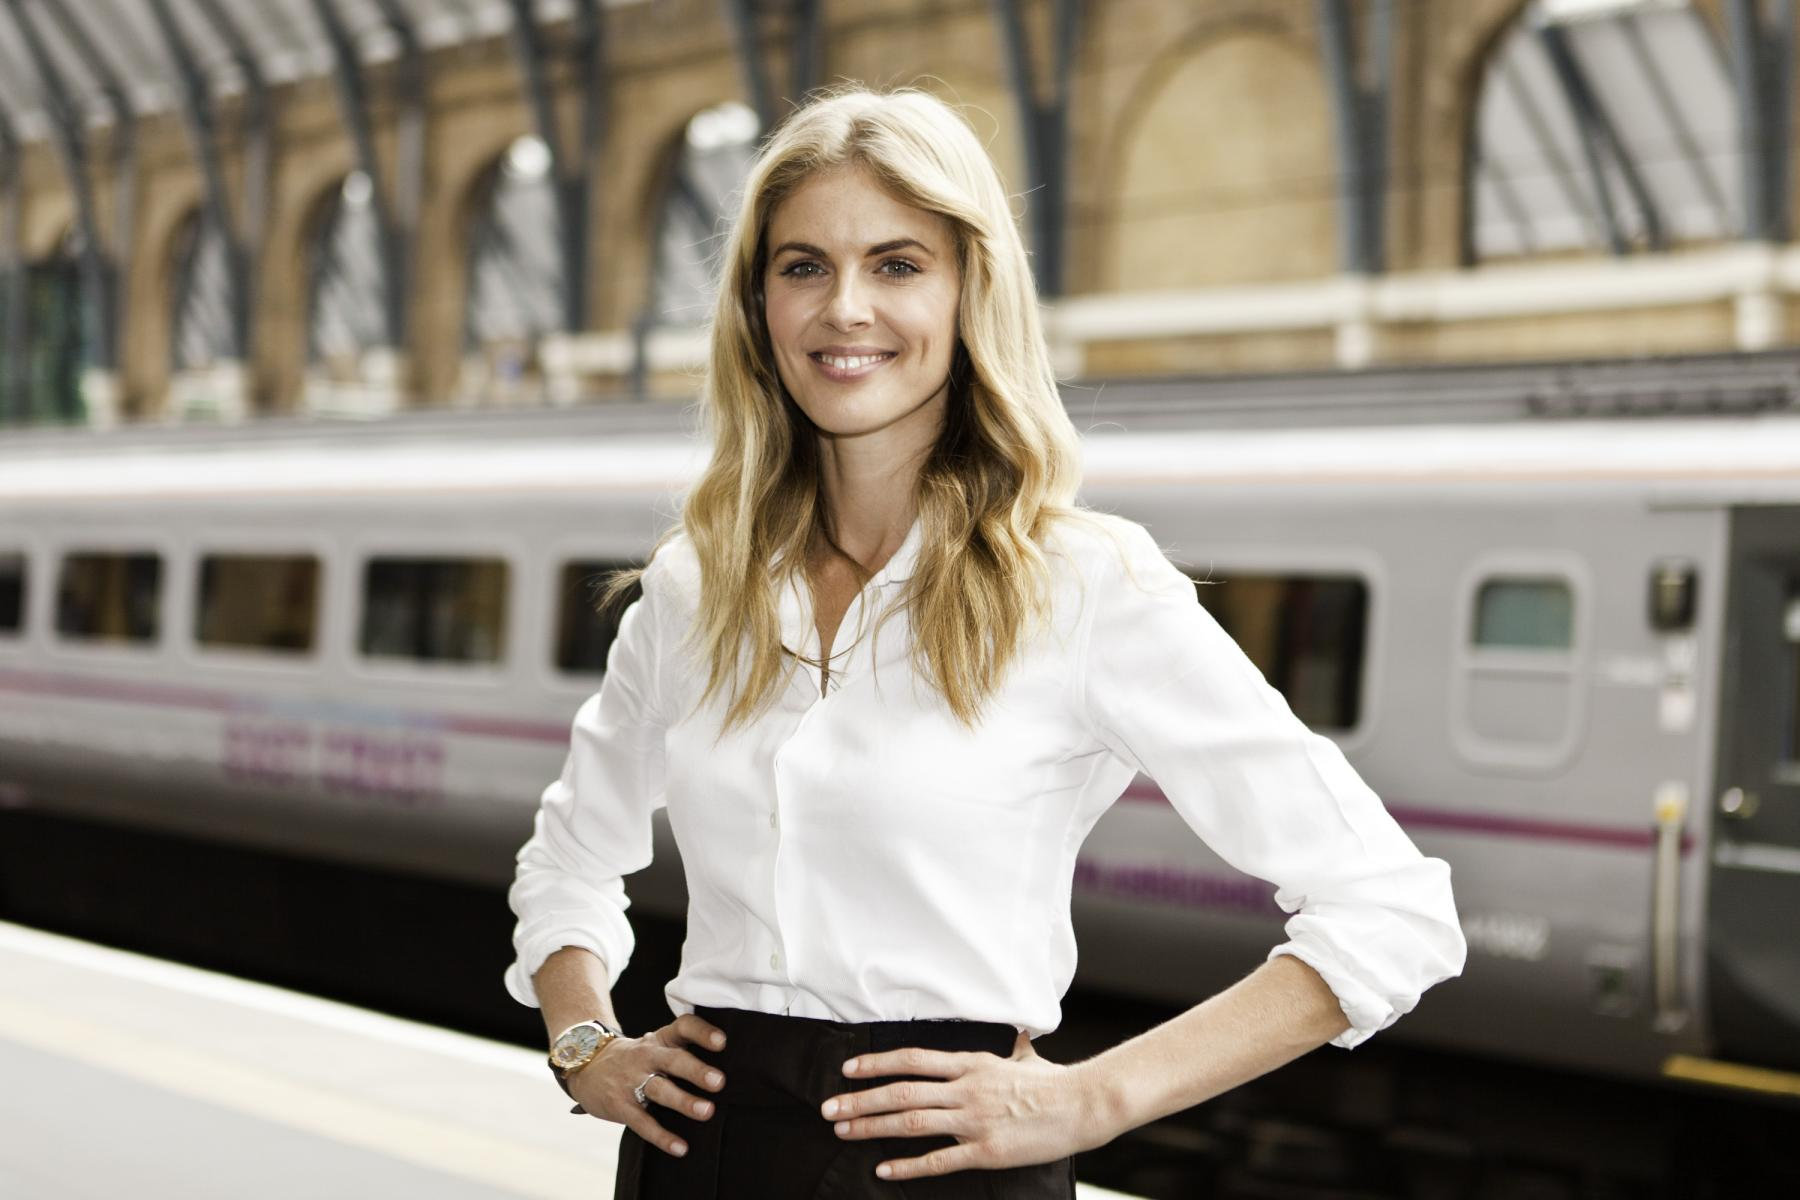 English media personality Donna Air changed her name to Donna Train for the week